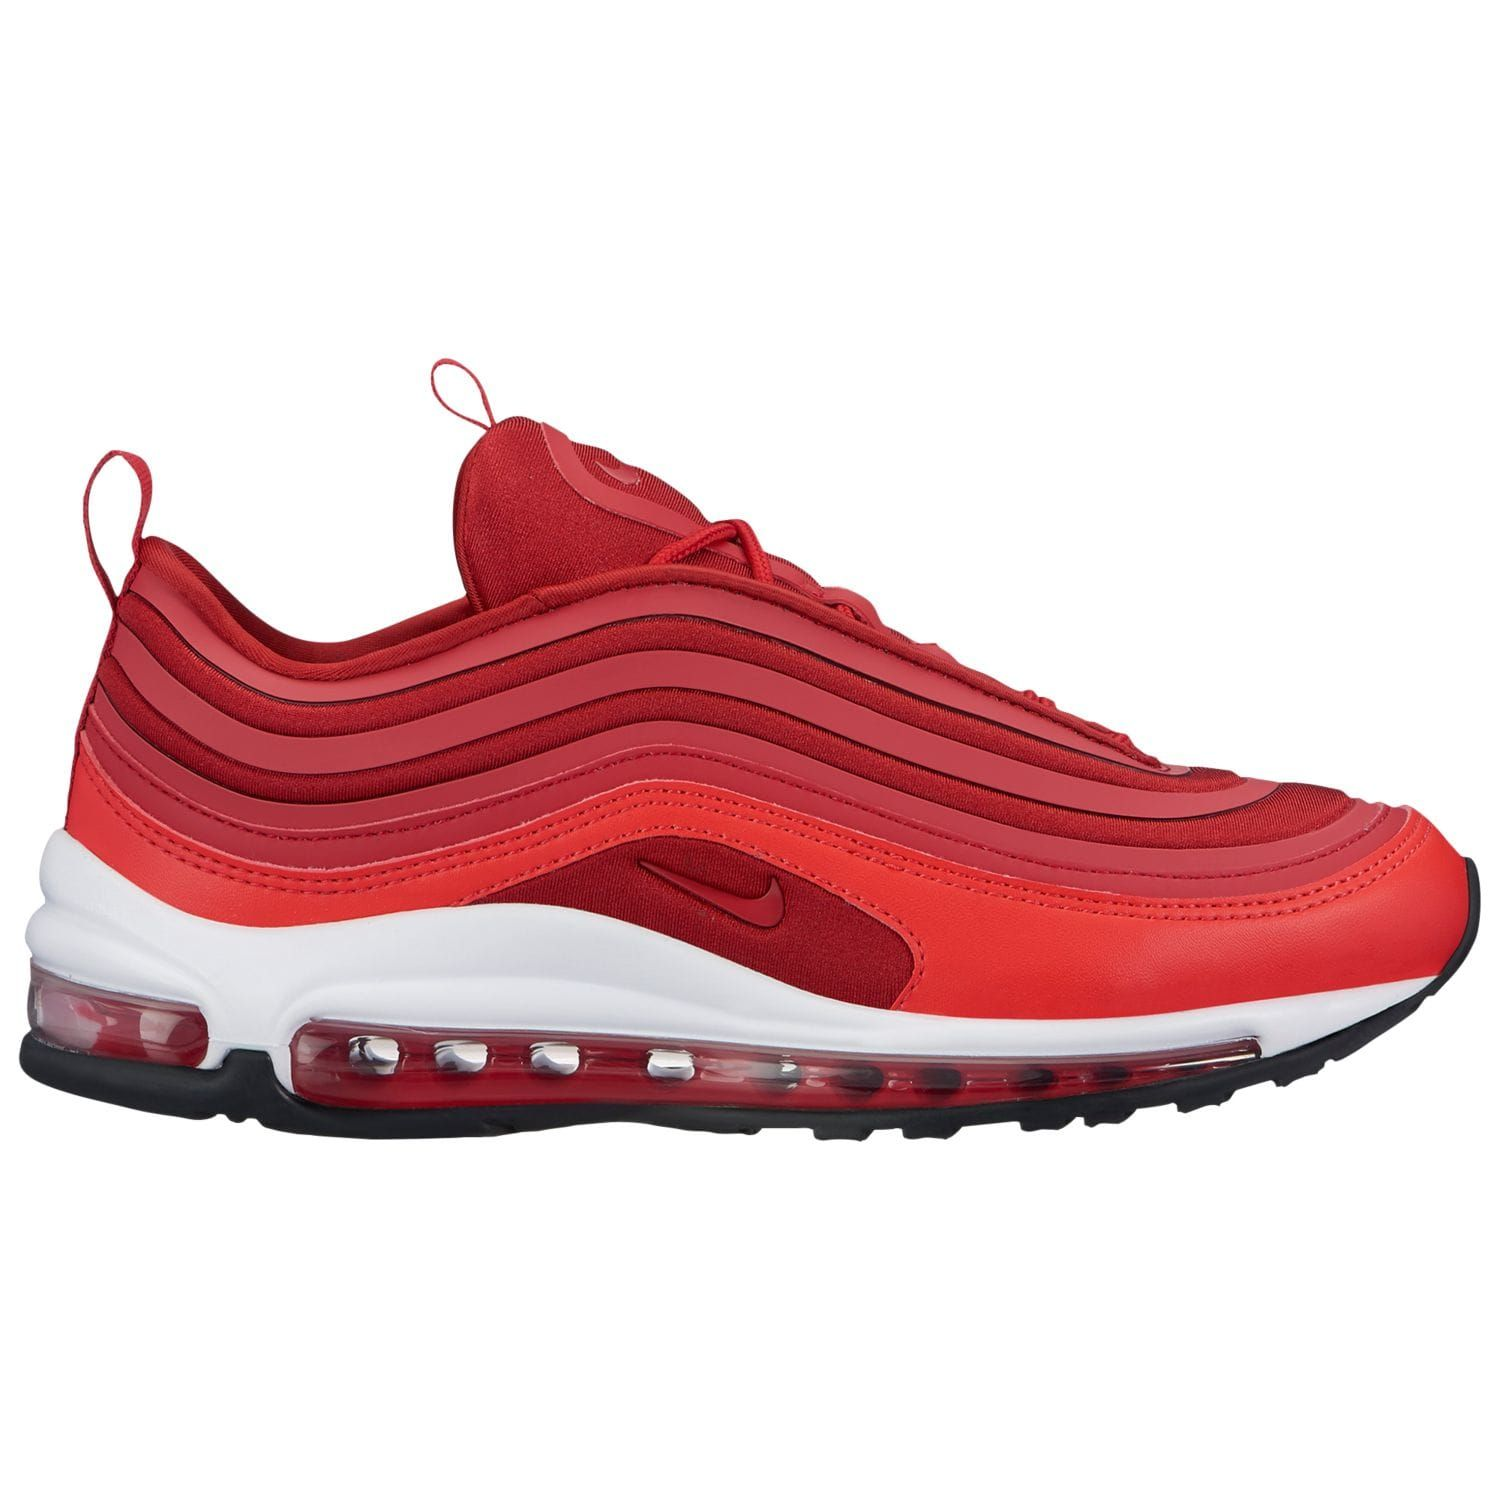 womens nike air max 97 ultra gym red nz|Free delivery!